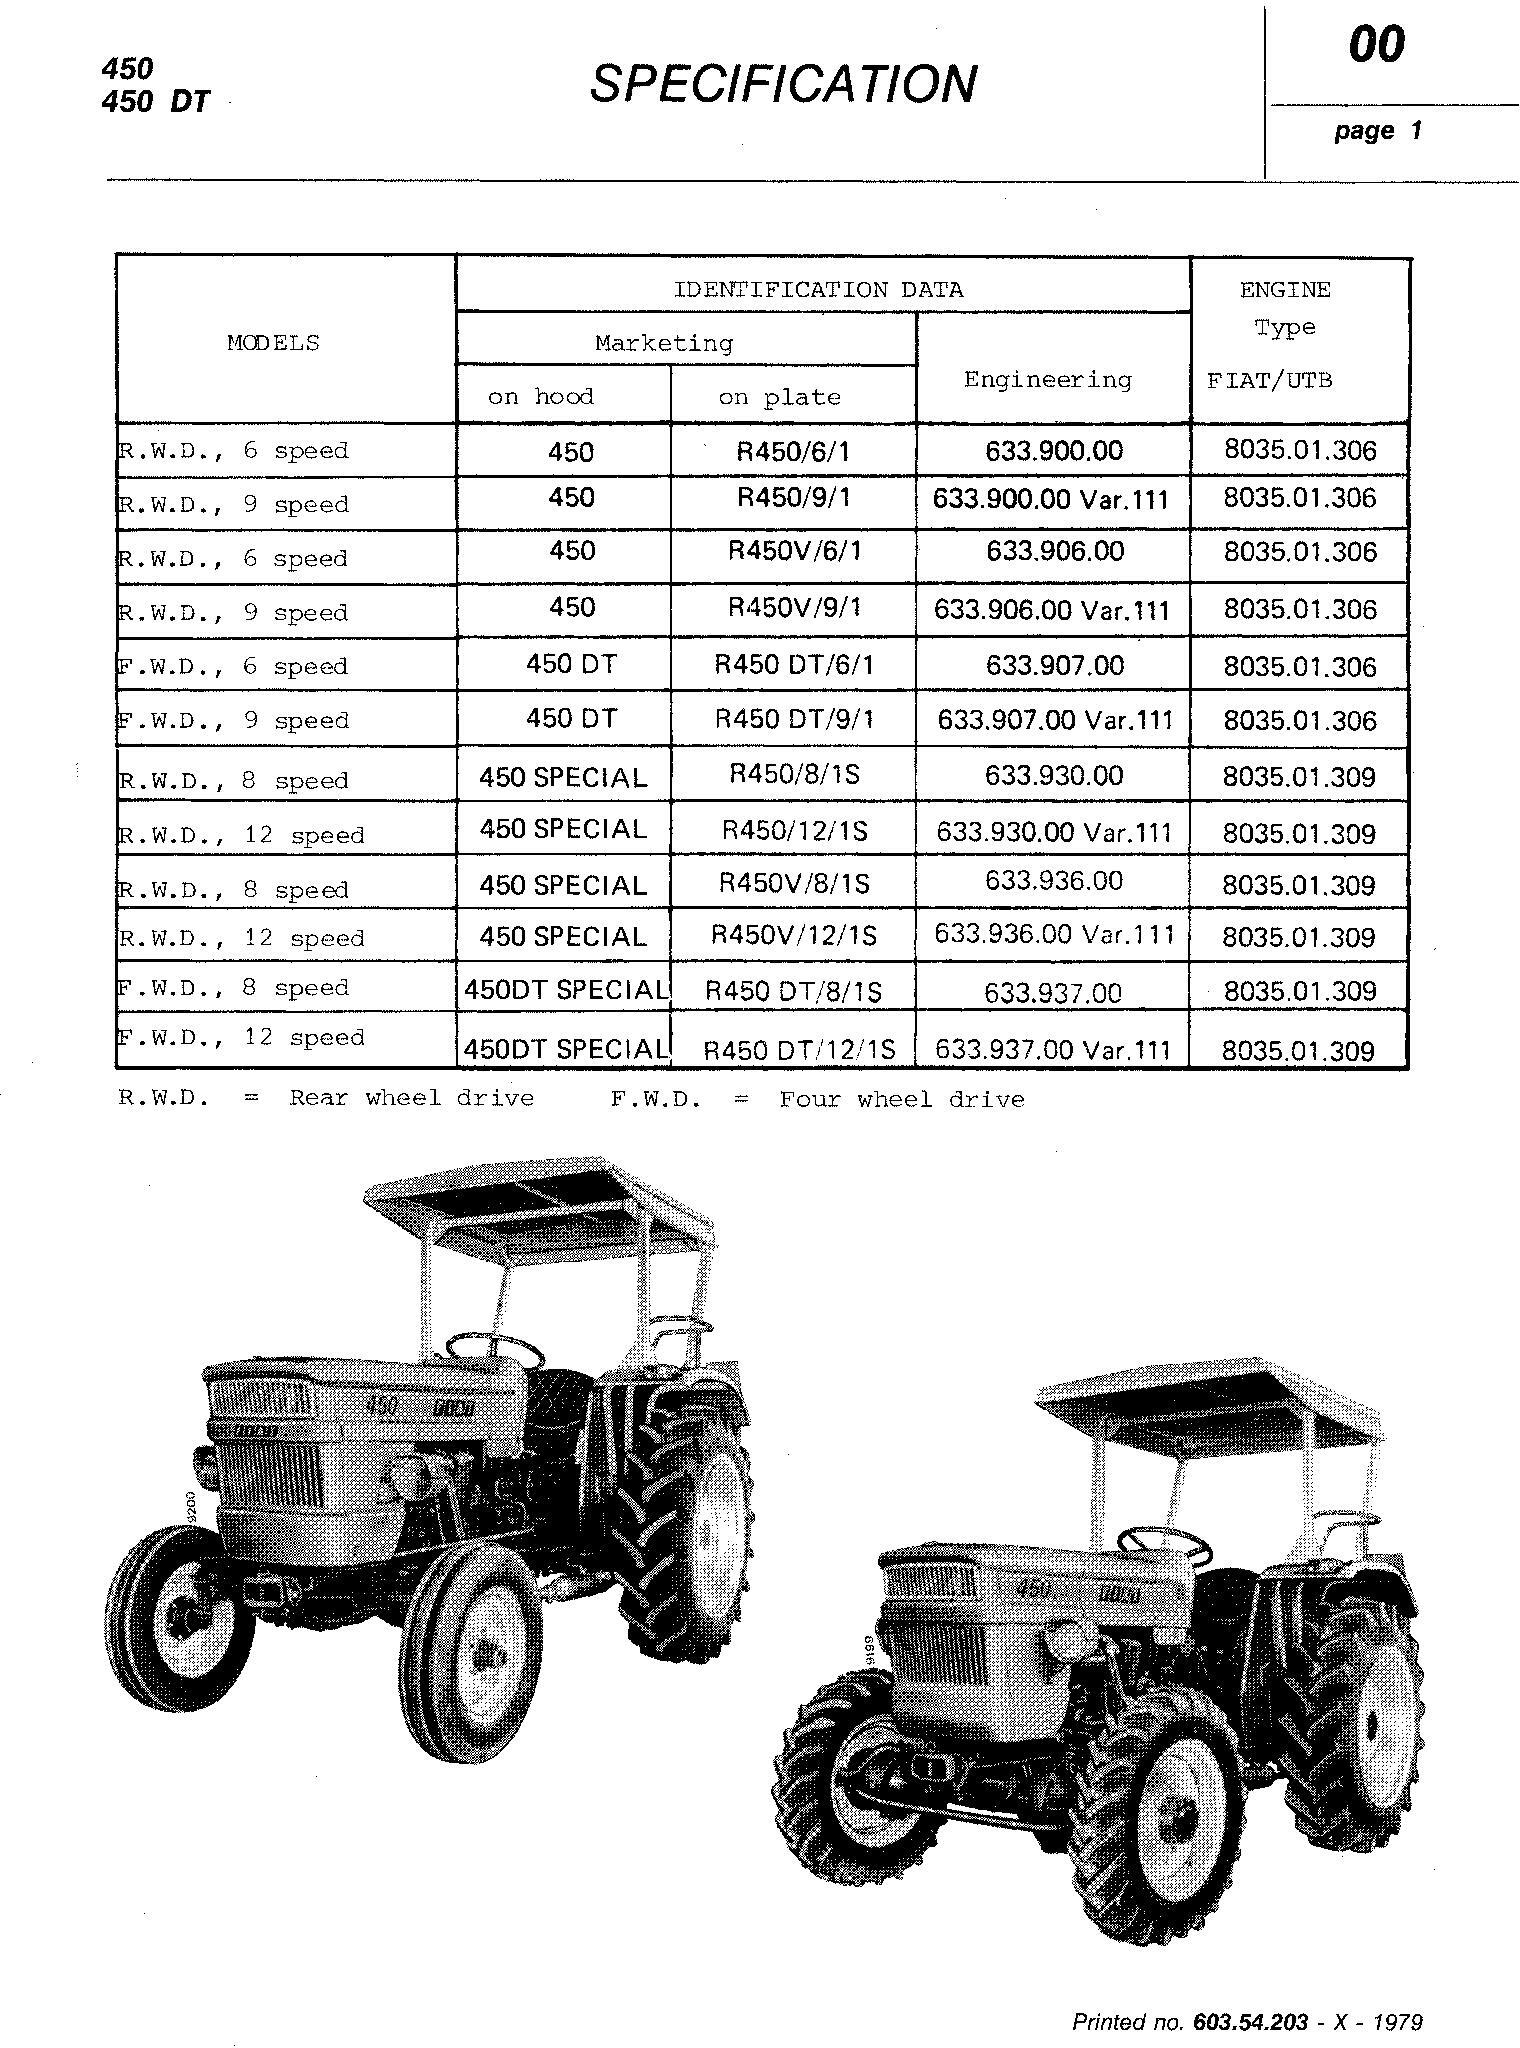 Fiat 450, 450S, 450 DT, 450 DTS Tractor Service Manual (6035420300) - 1